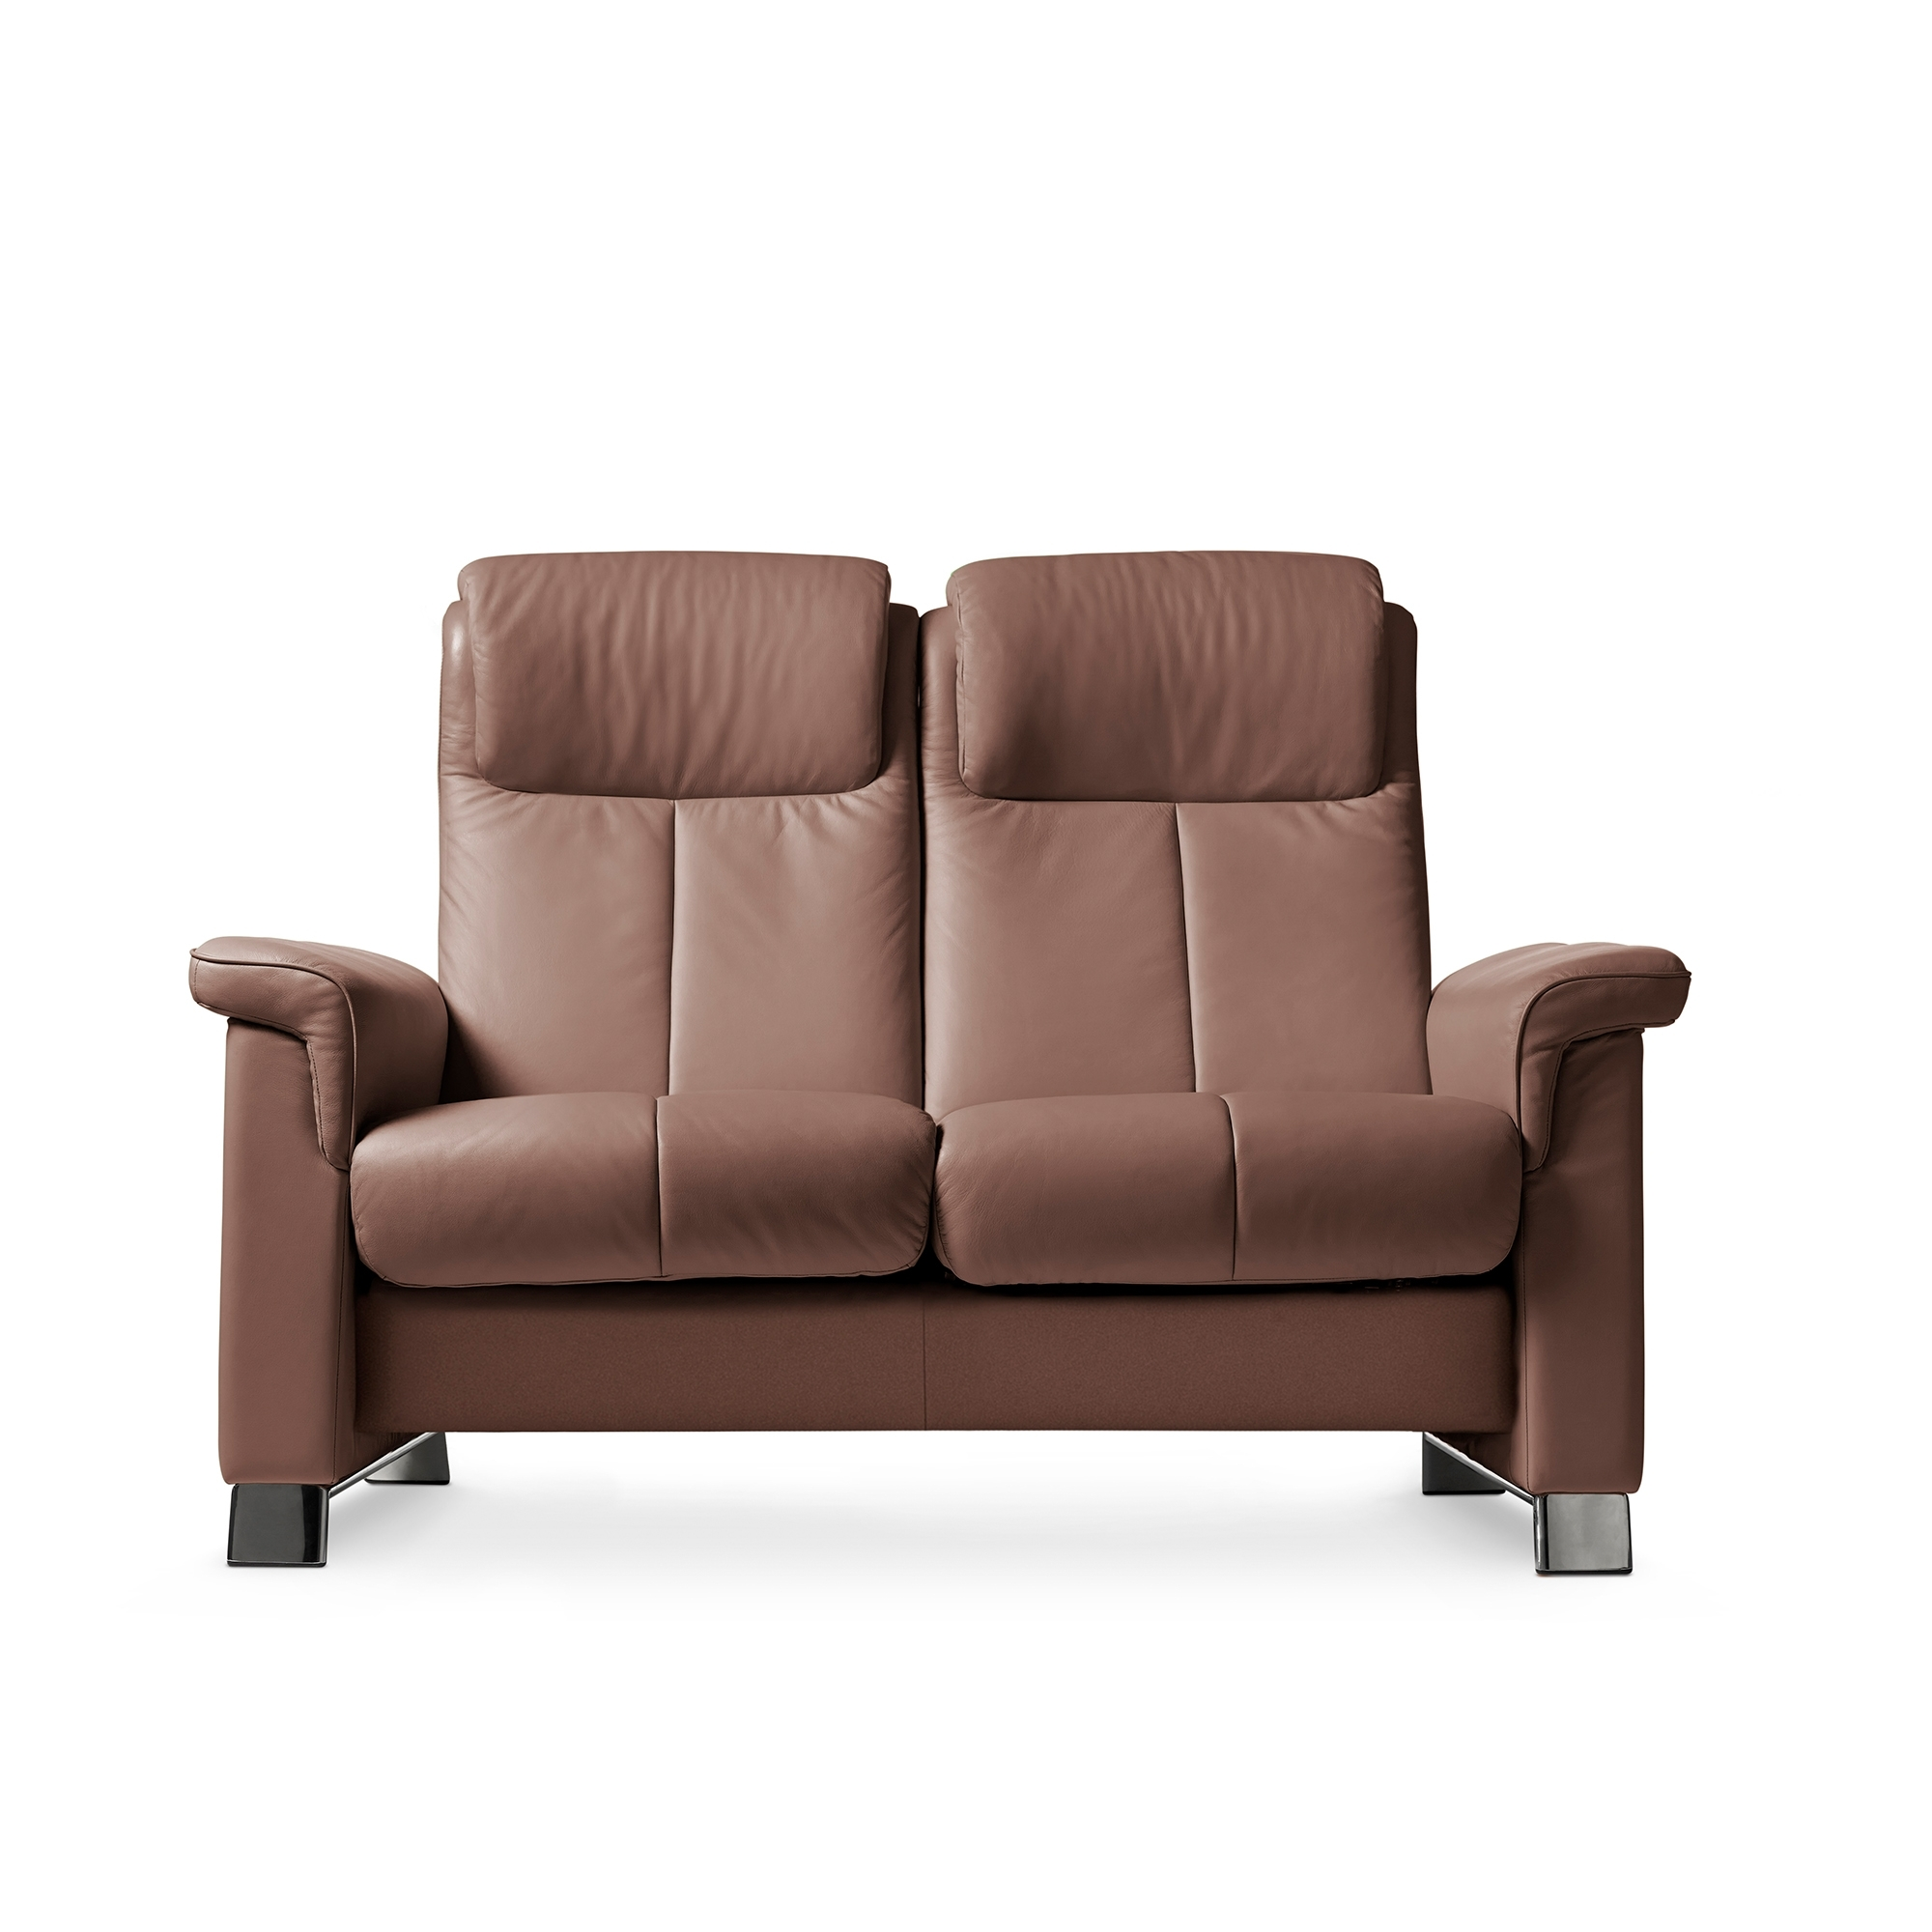 Stressless Breeze 2 Seater Sofa Stressless Cookes